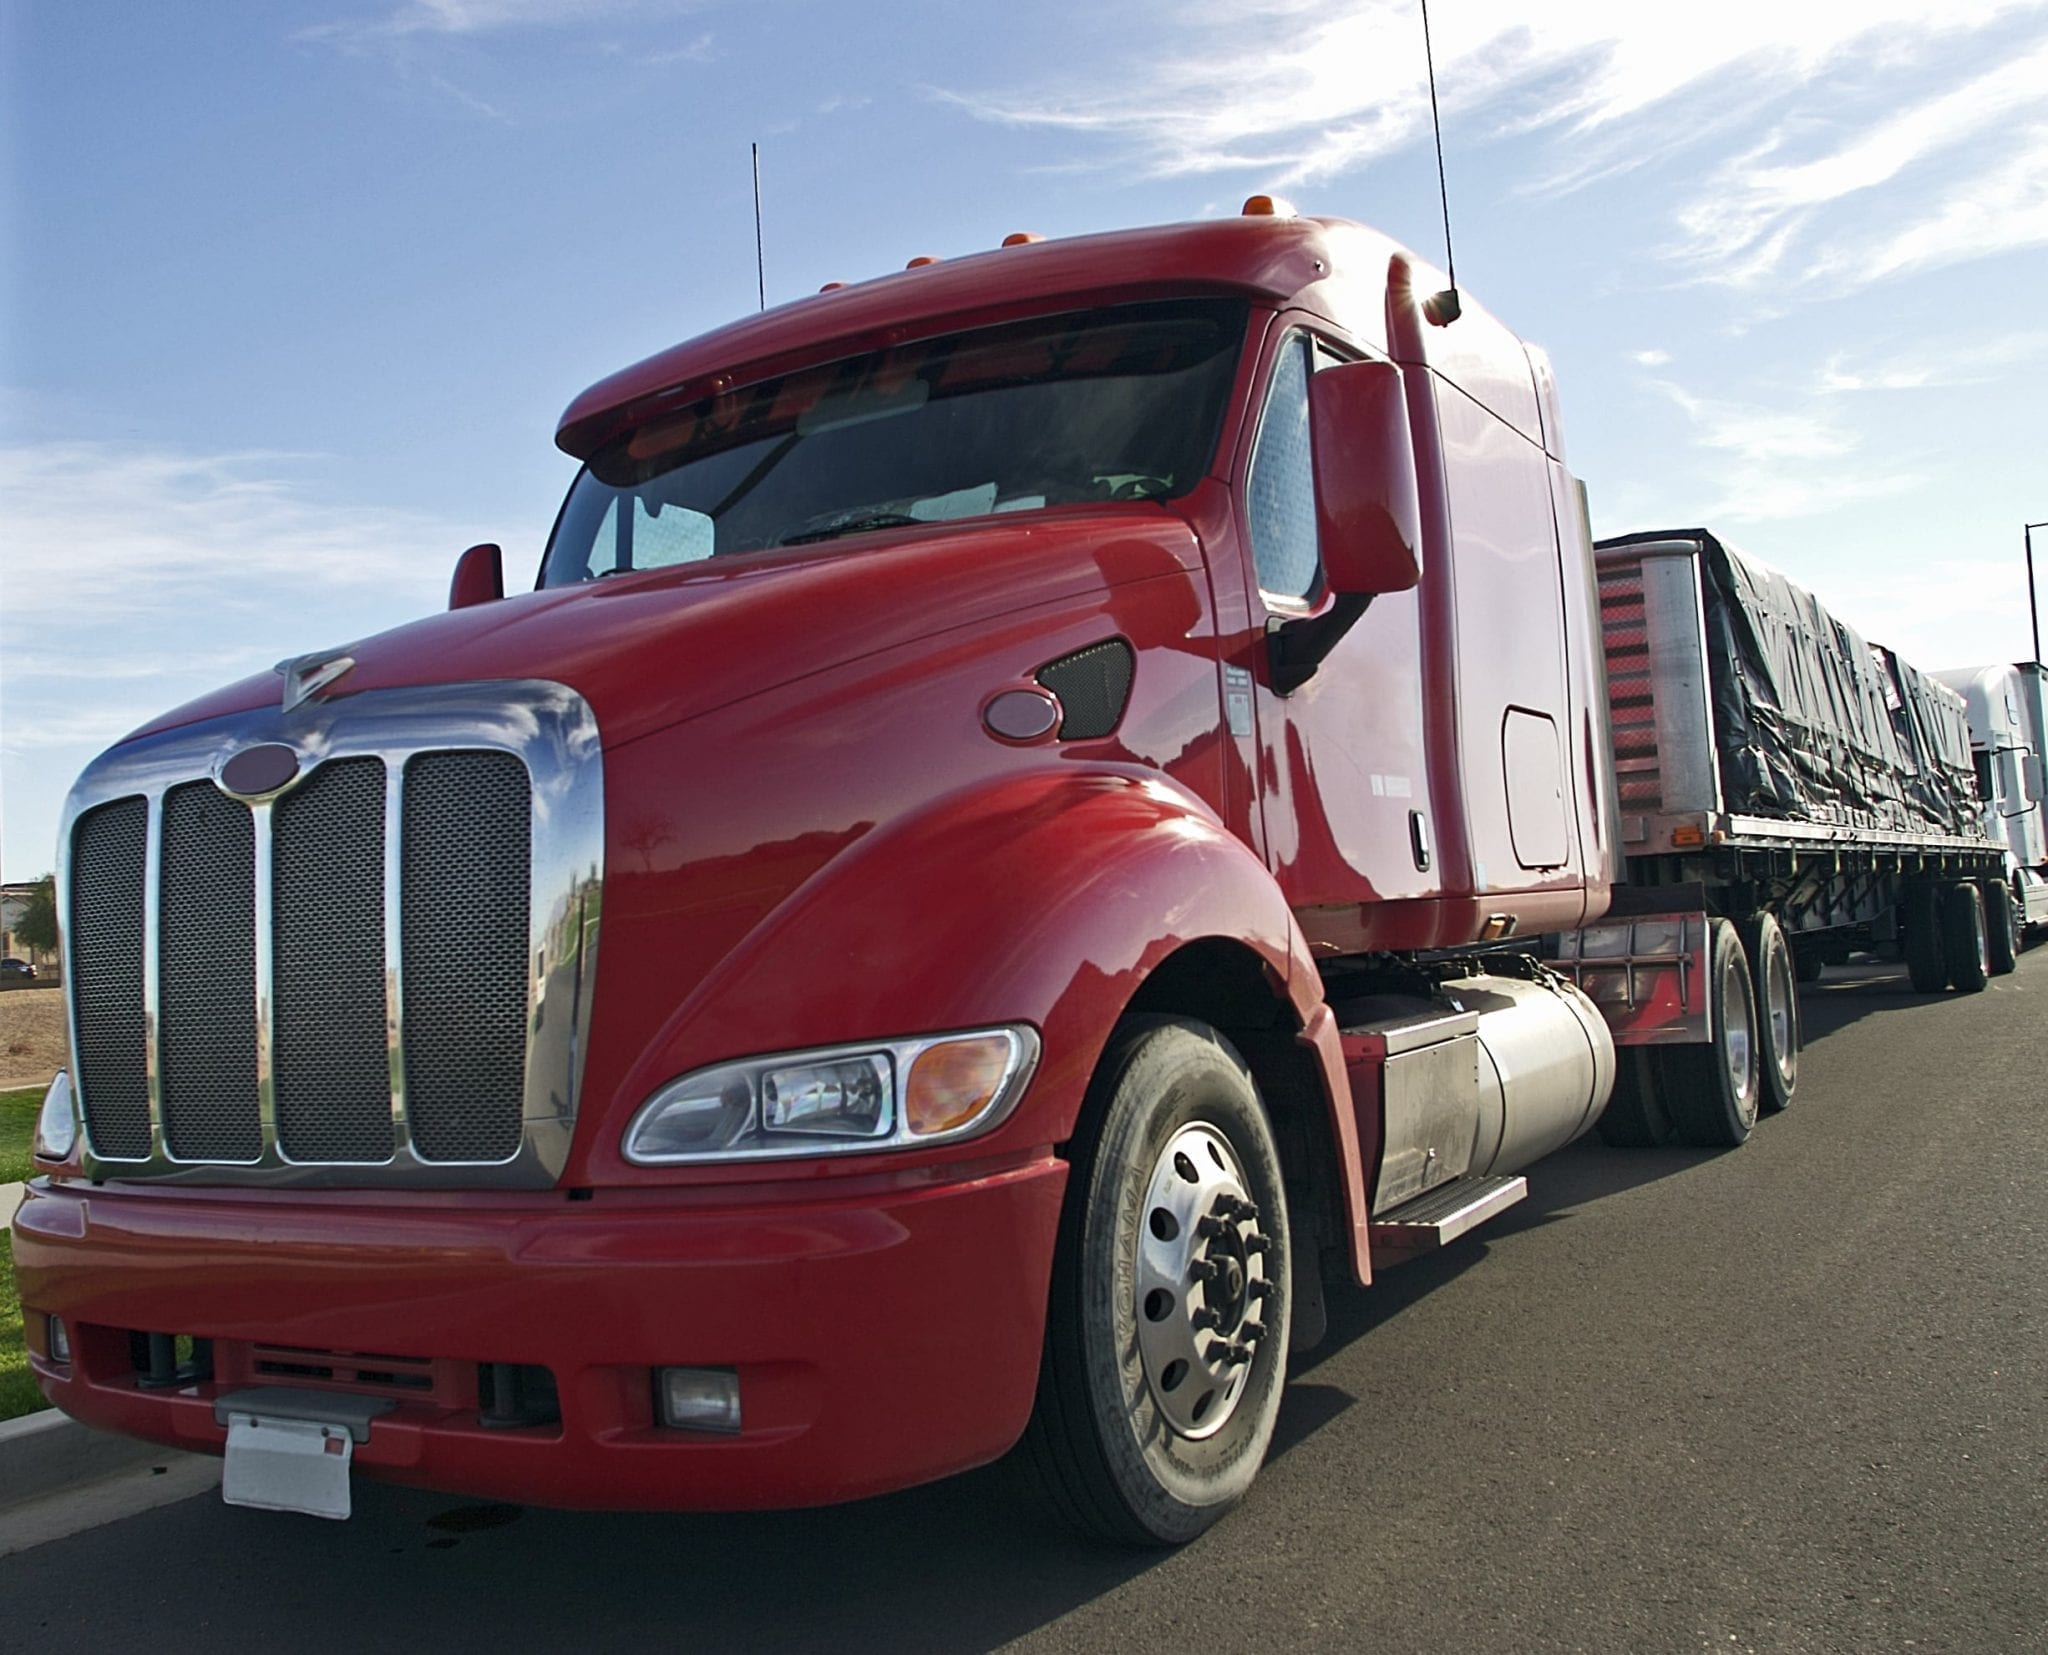 Parked Red 18-wheeler Truck Stock Photo